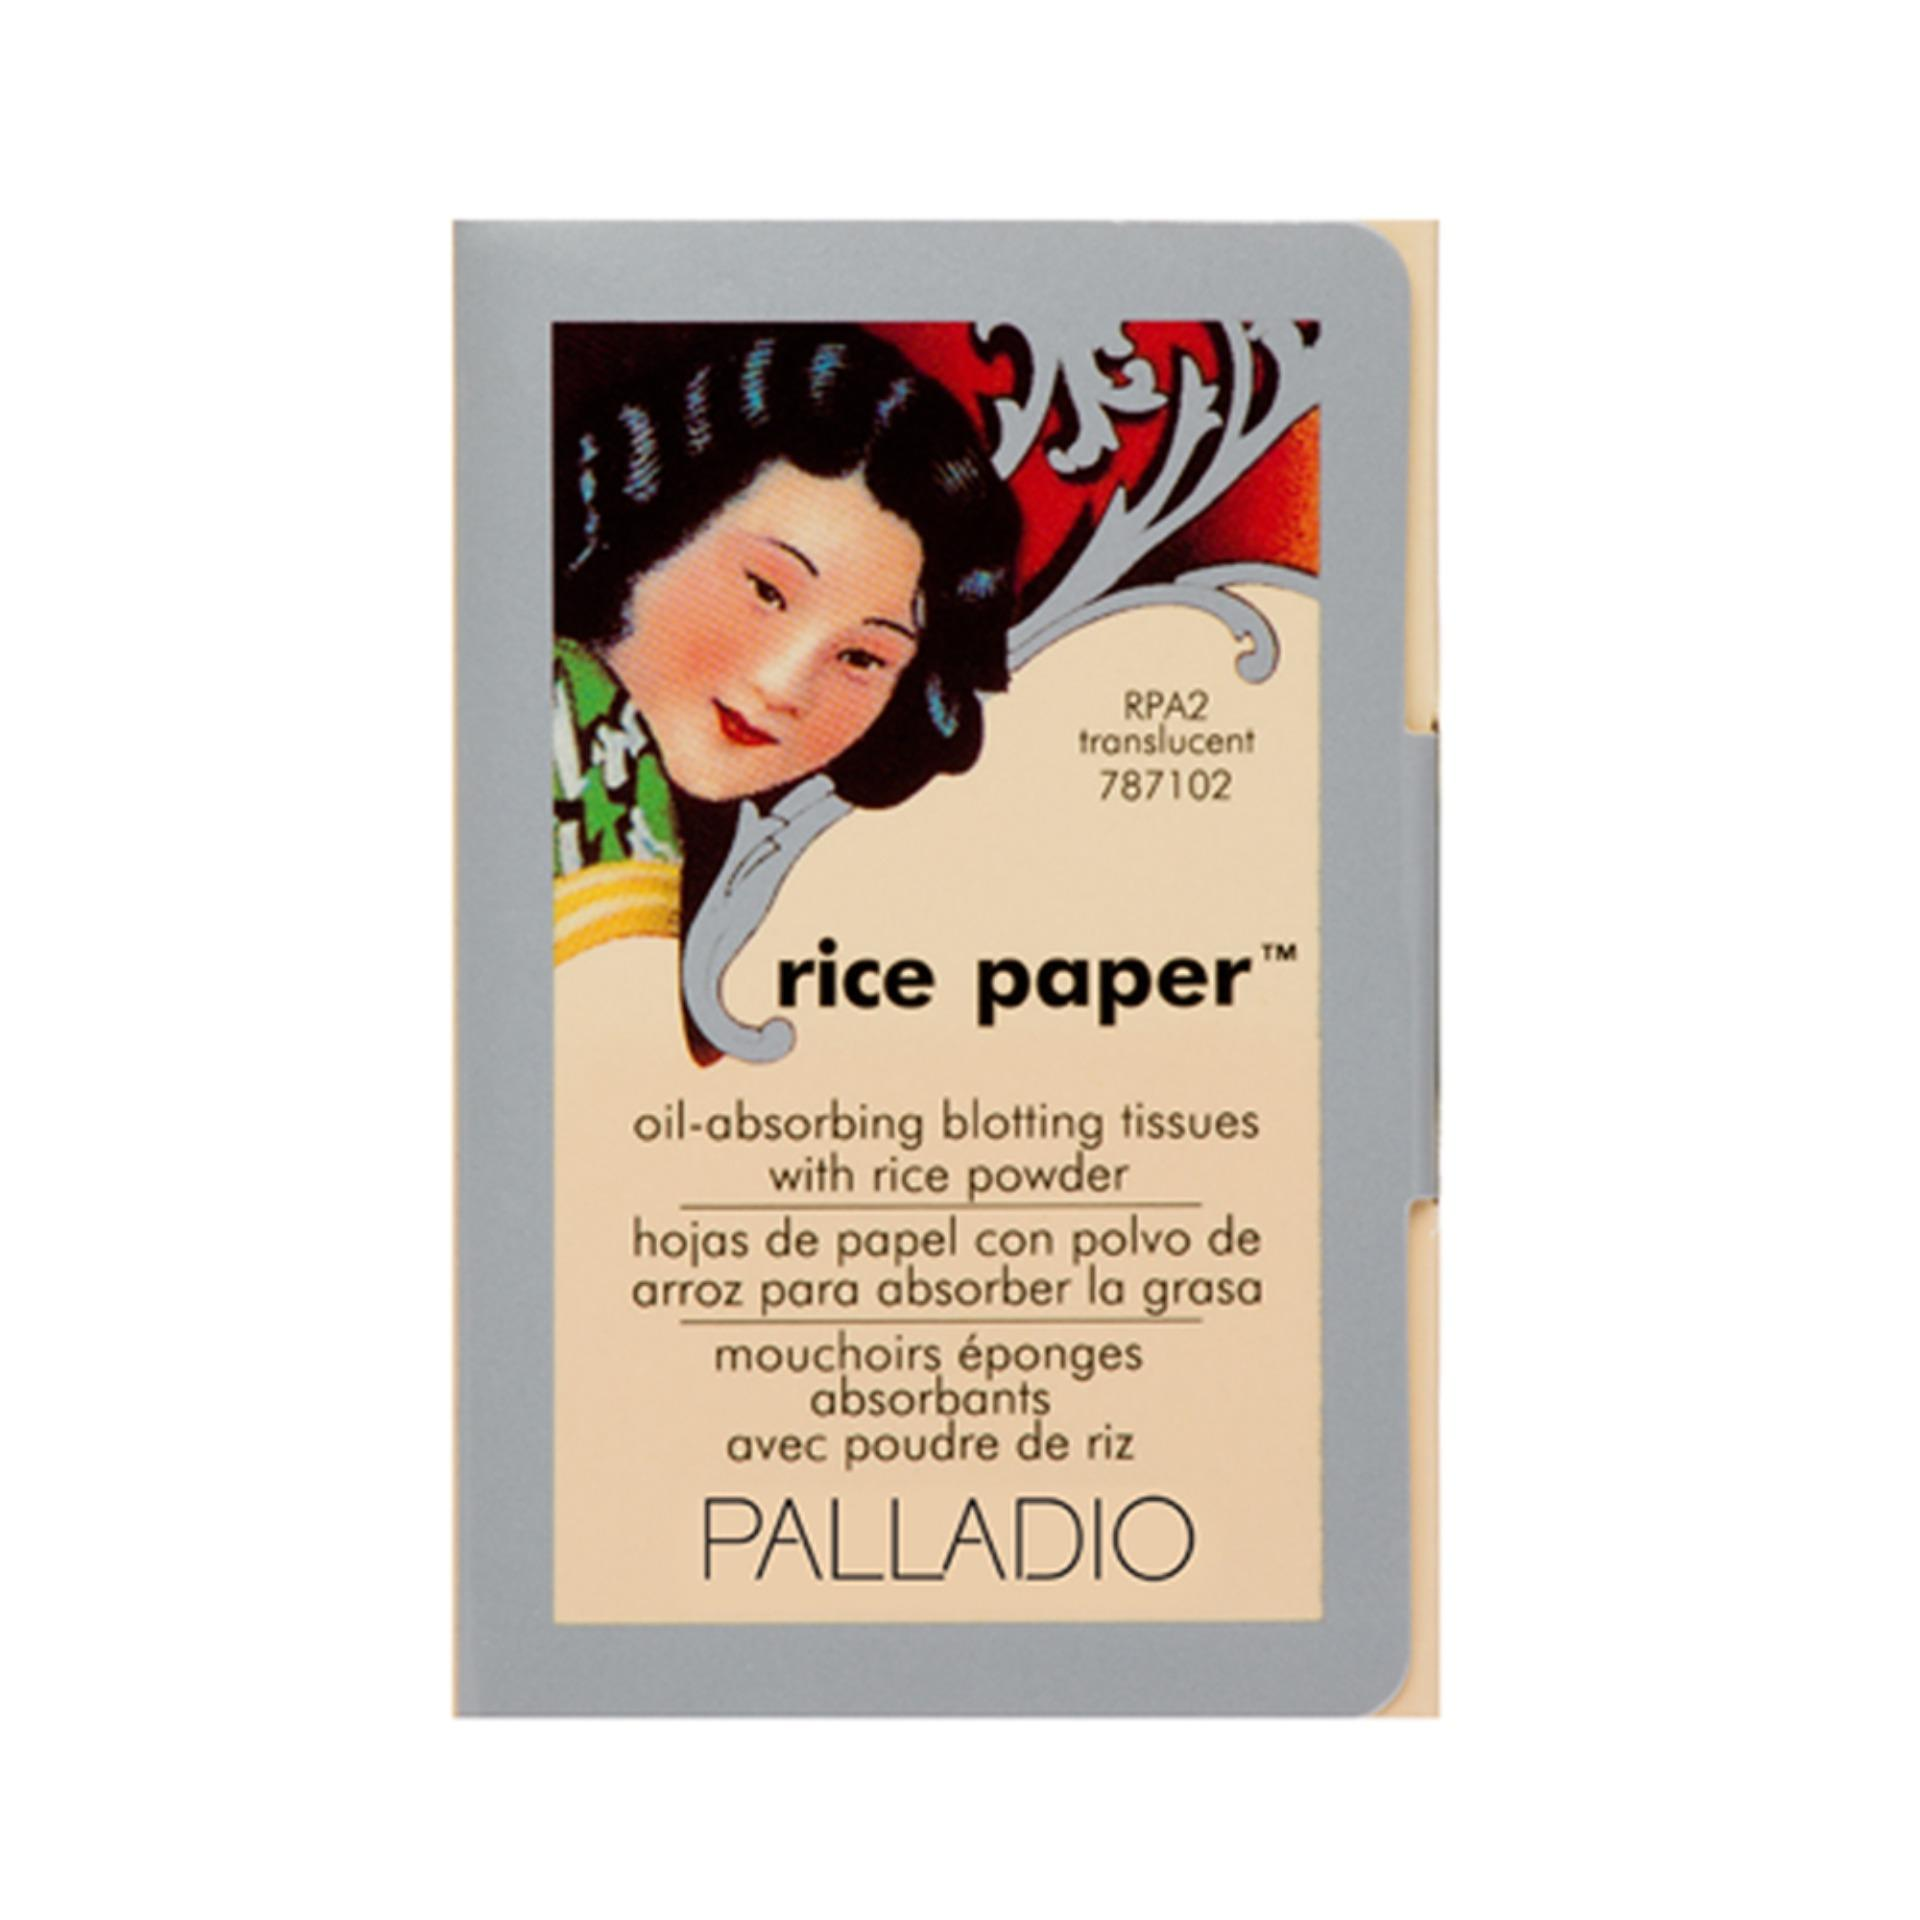 PALLADIO Translucent Rice Paper Philippines